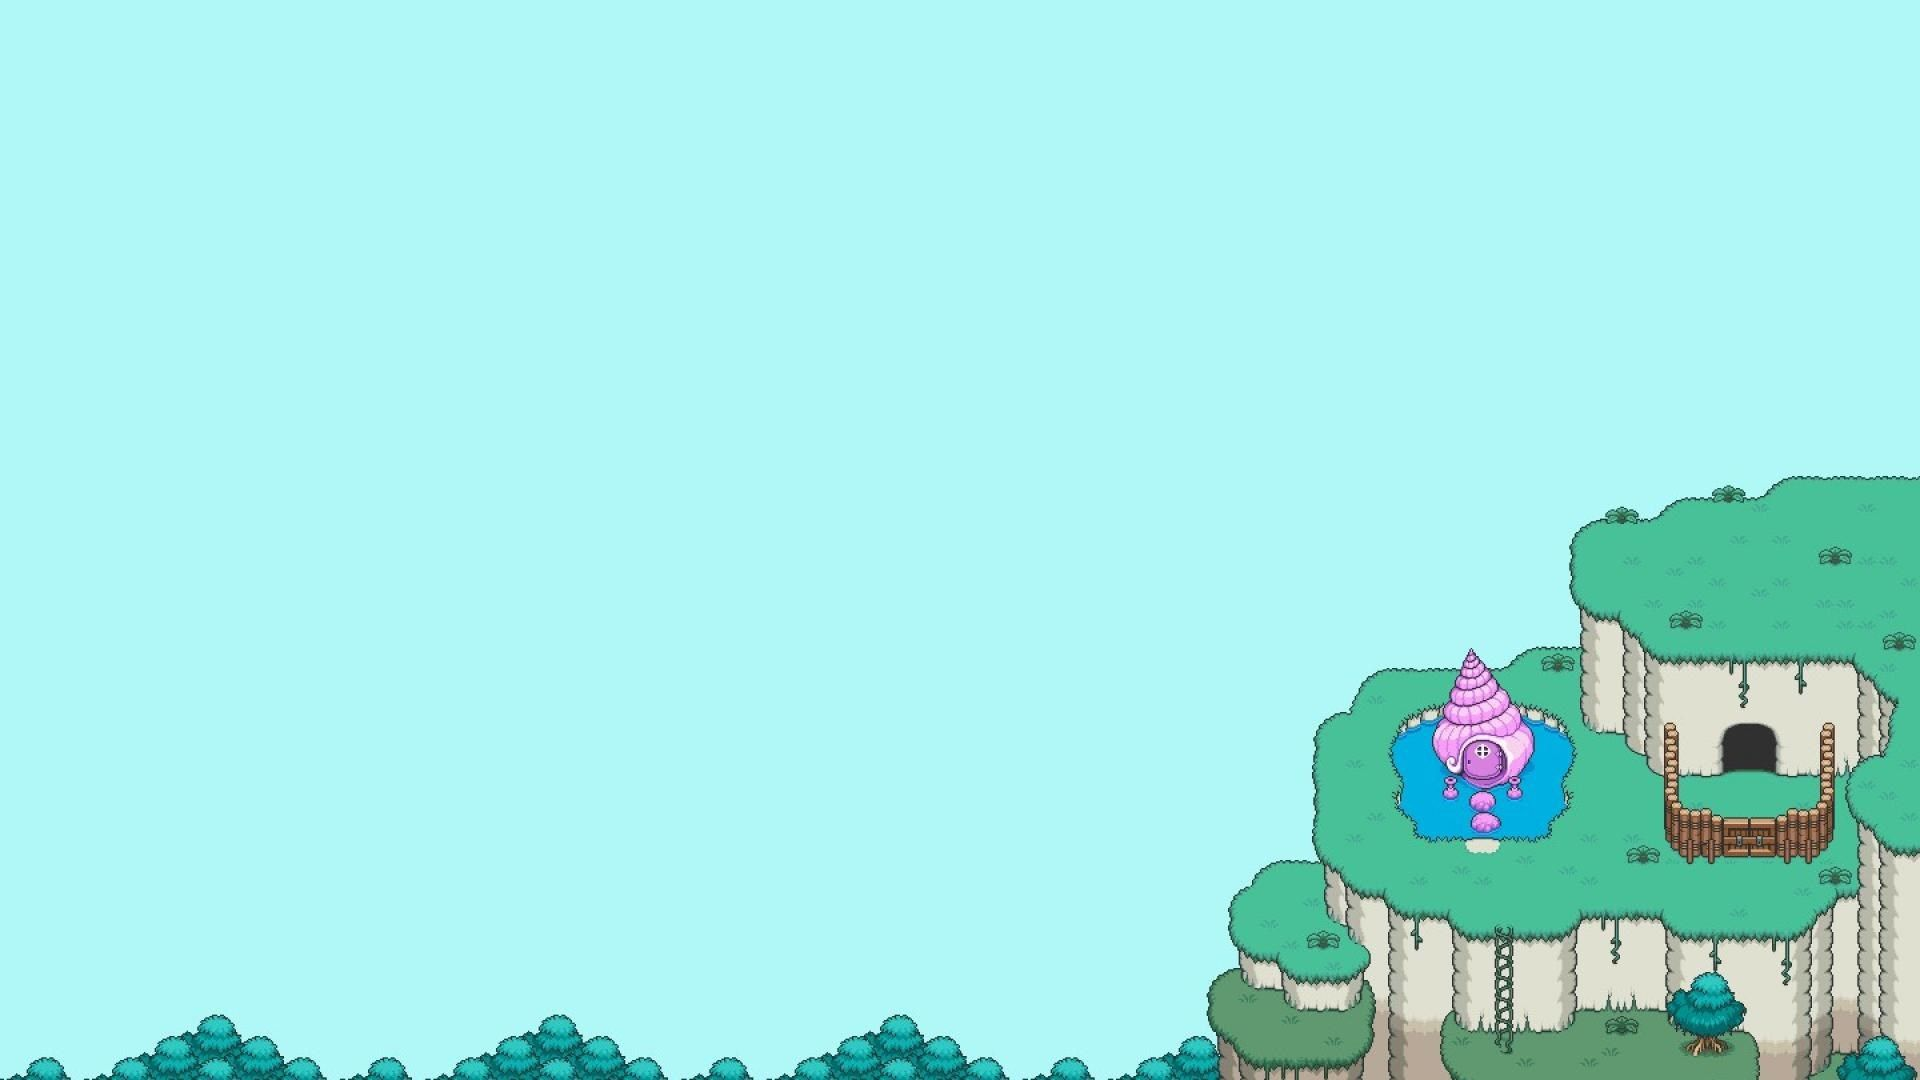 Rpg Mother Earthbound Pixel Art 3 House Wallpaper Pixel Art Home Wallpaper Art